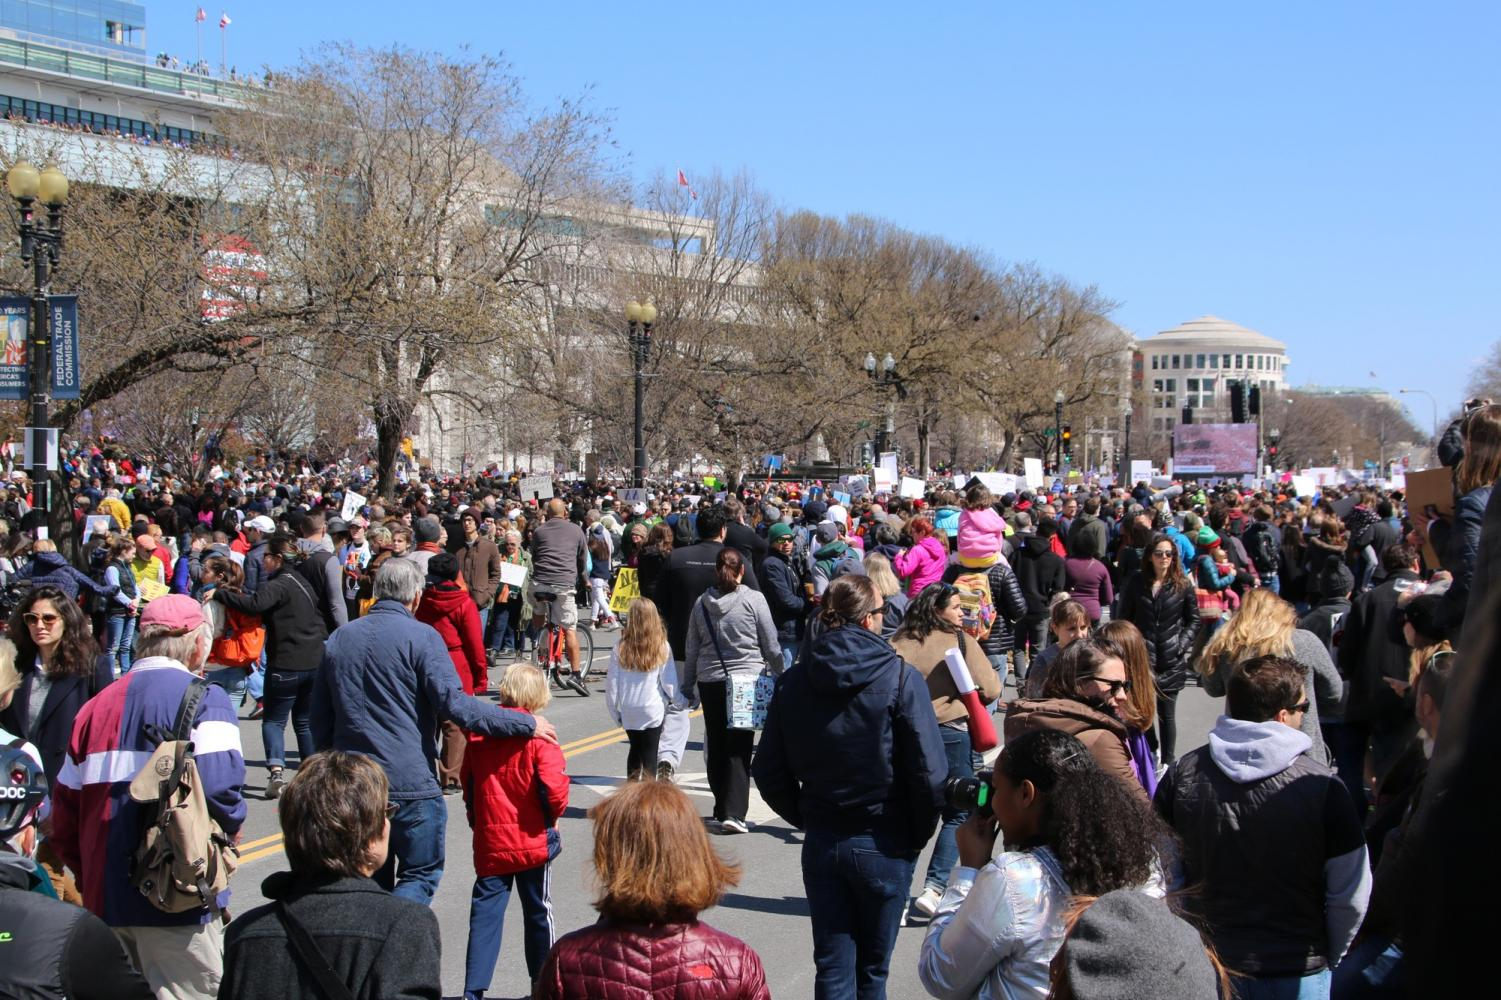 Thousands rally at March for Our Lives in Washington D.C.